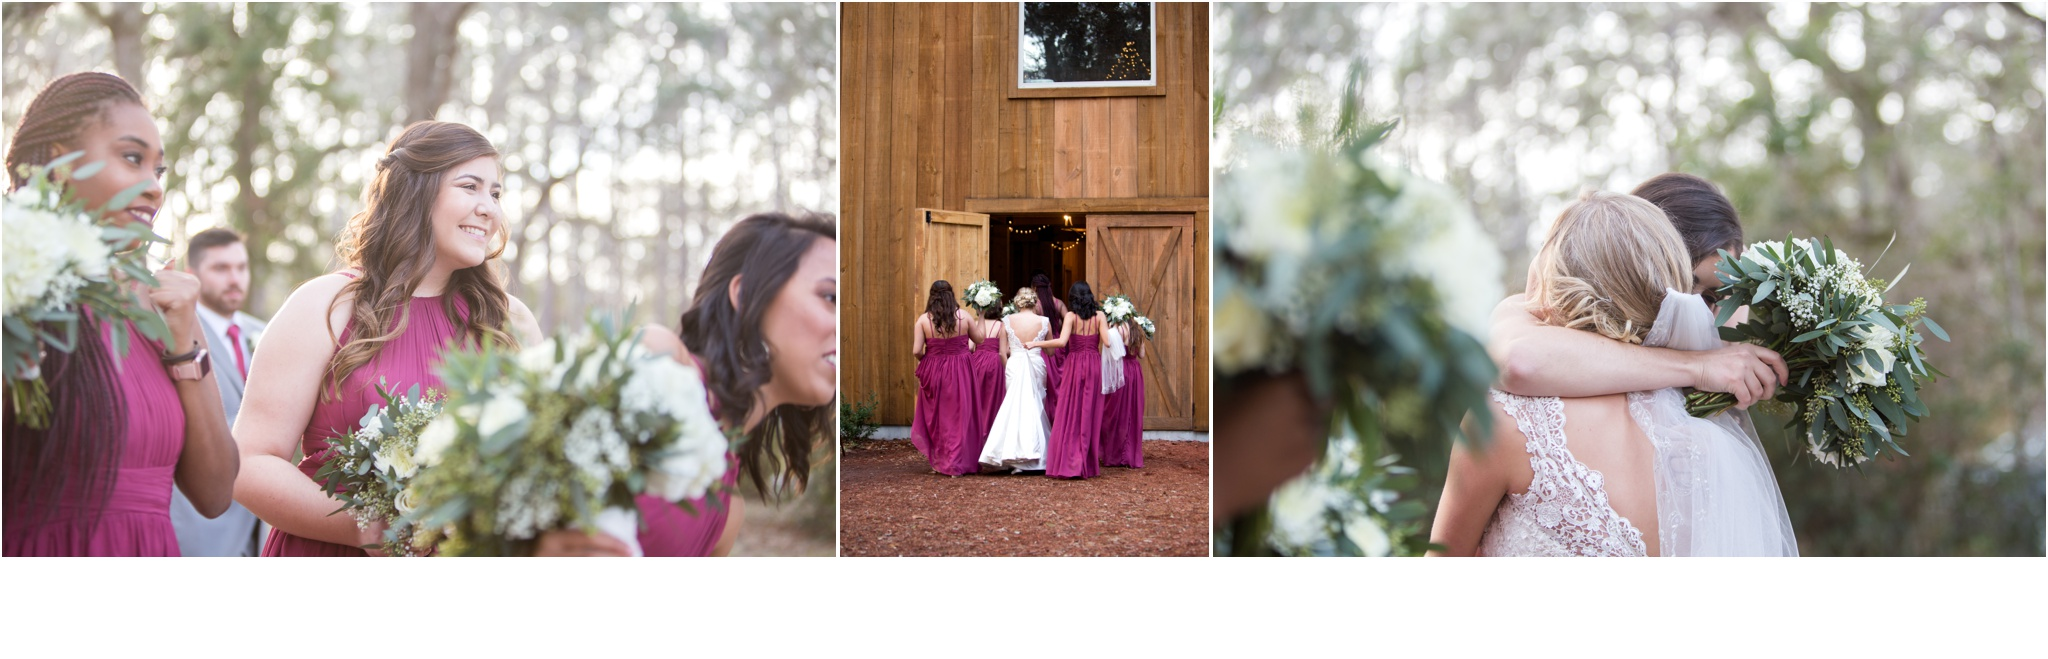 Rainey_Gregg_Photography_St._Simons_Island_Georgia_California_Wedding_Portrait_Photography_0534.jpg